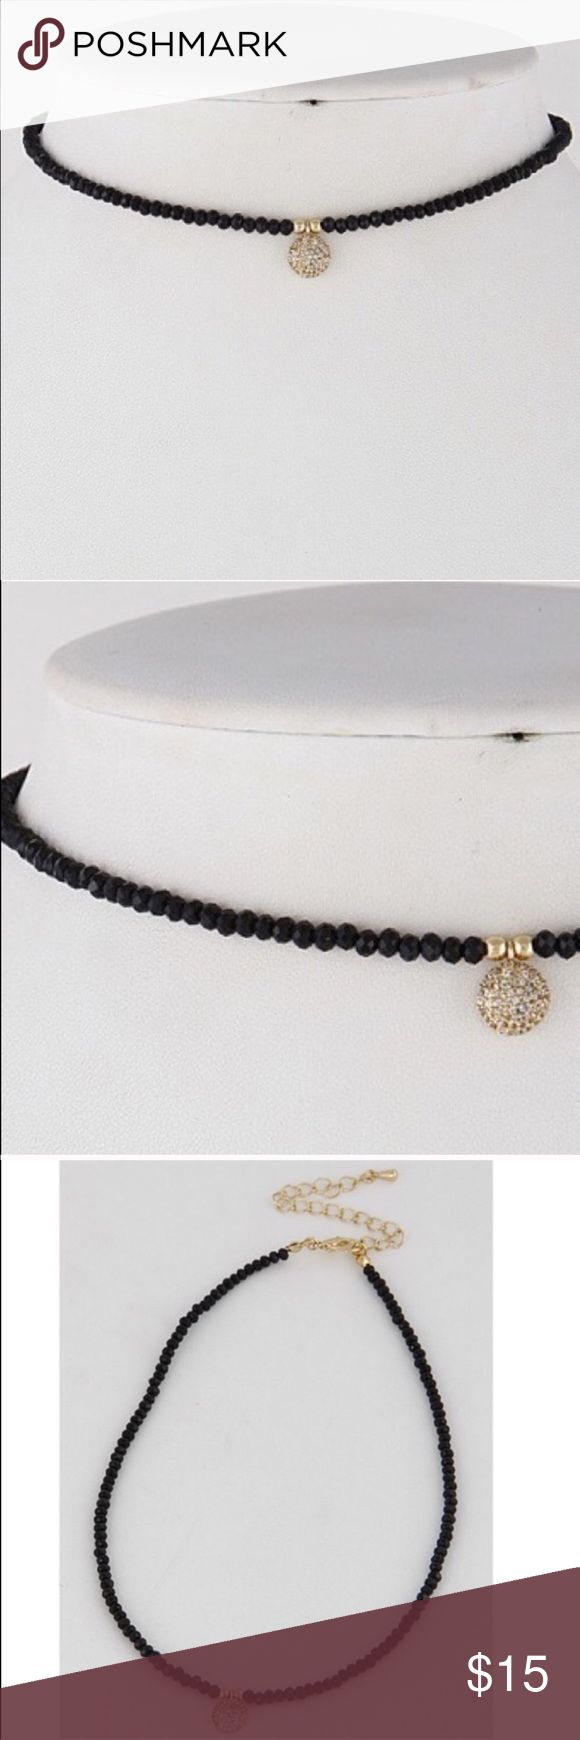 Sparkly Beaded Choker w/ Round Pendant Brand new- still in original packaging! Dainty black and gold Beaded choker with adjustable clasp. ✖️Color & sizing shown in all photos. 🌜measurements: 12 approx. ••• FAST SHIPPING ••• 🚫 NO TRADES. Firm on price but open to hearing reasonable offers. Topshop Jewelry Necklaces